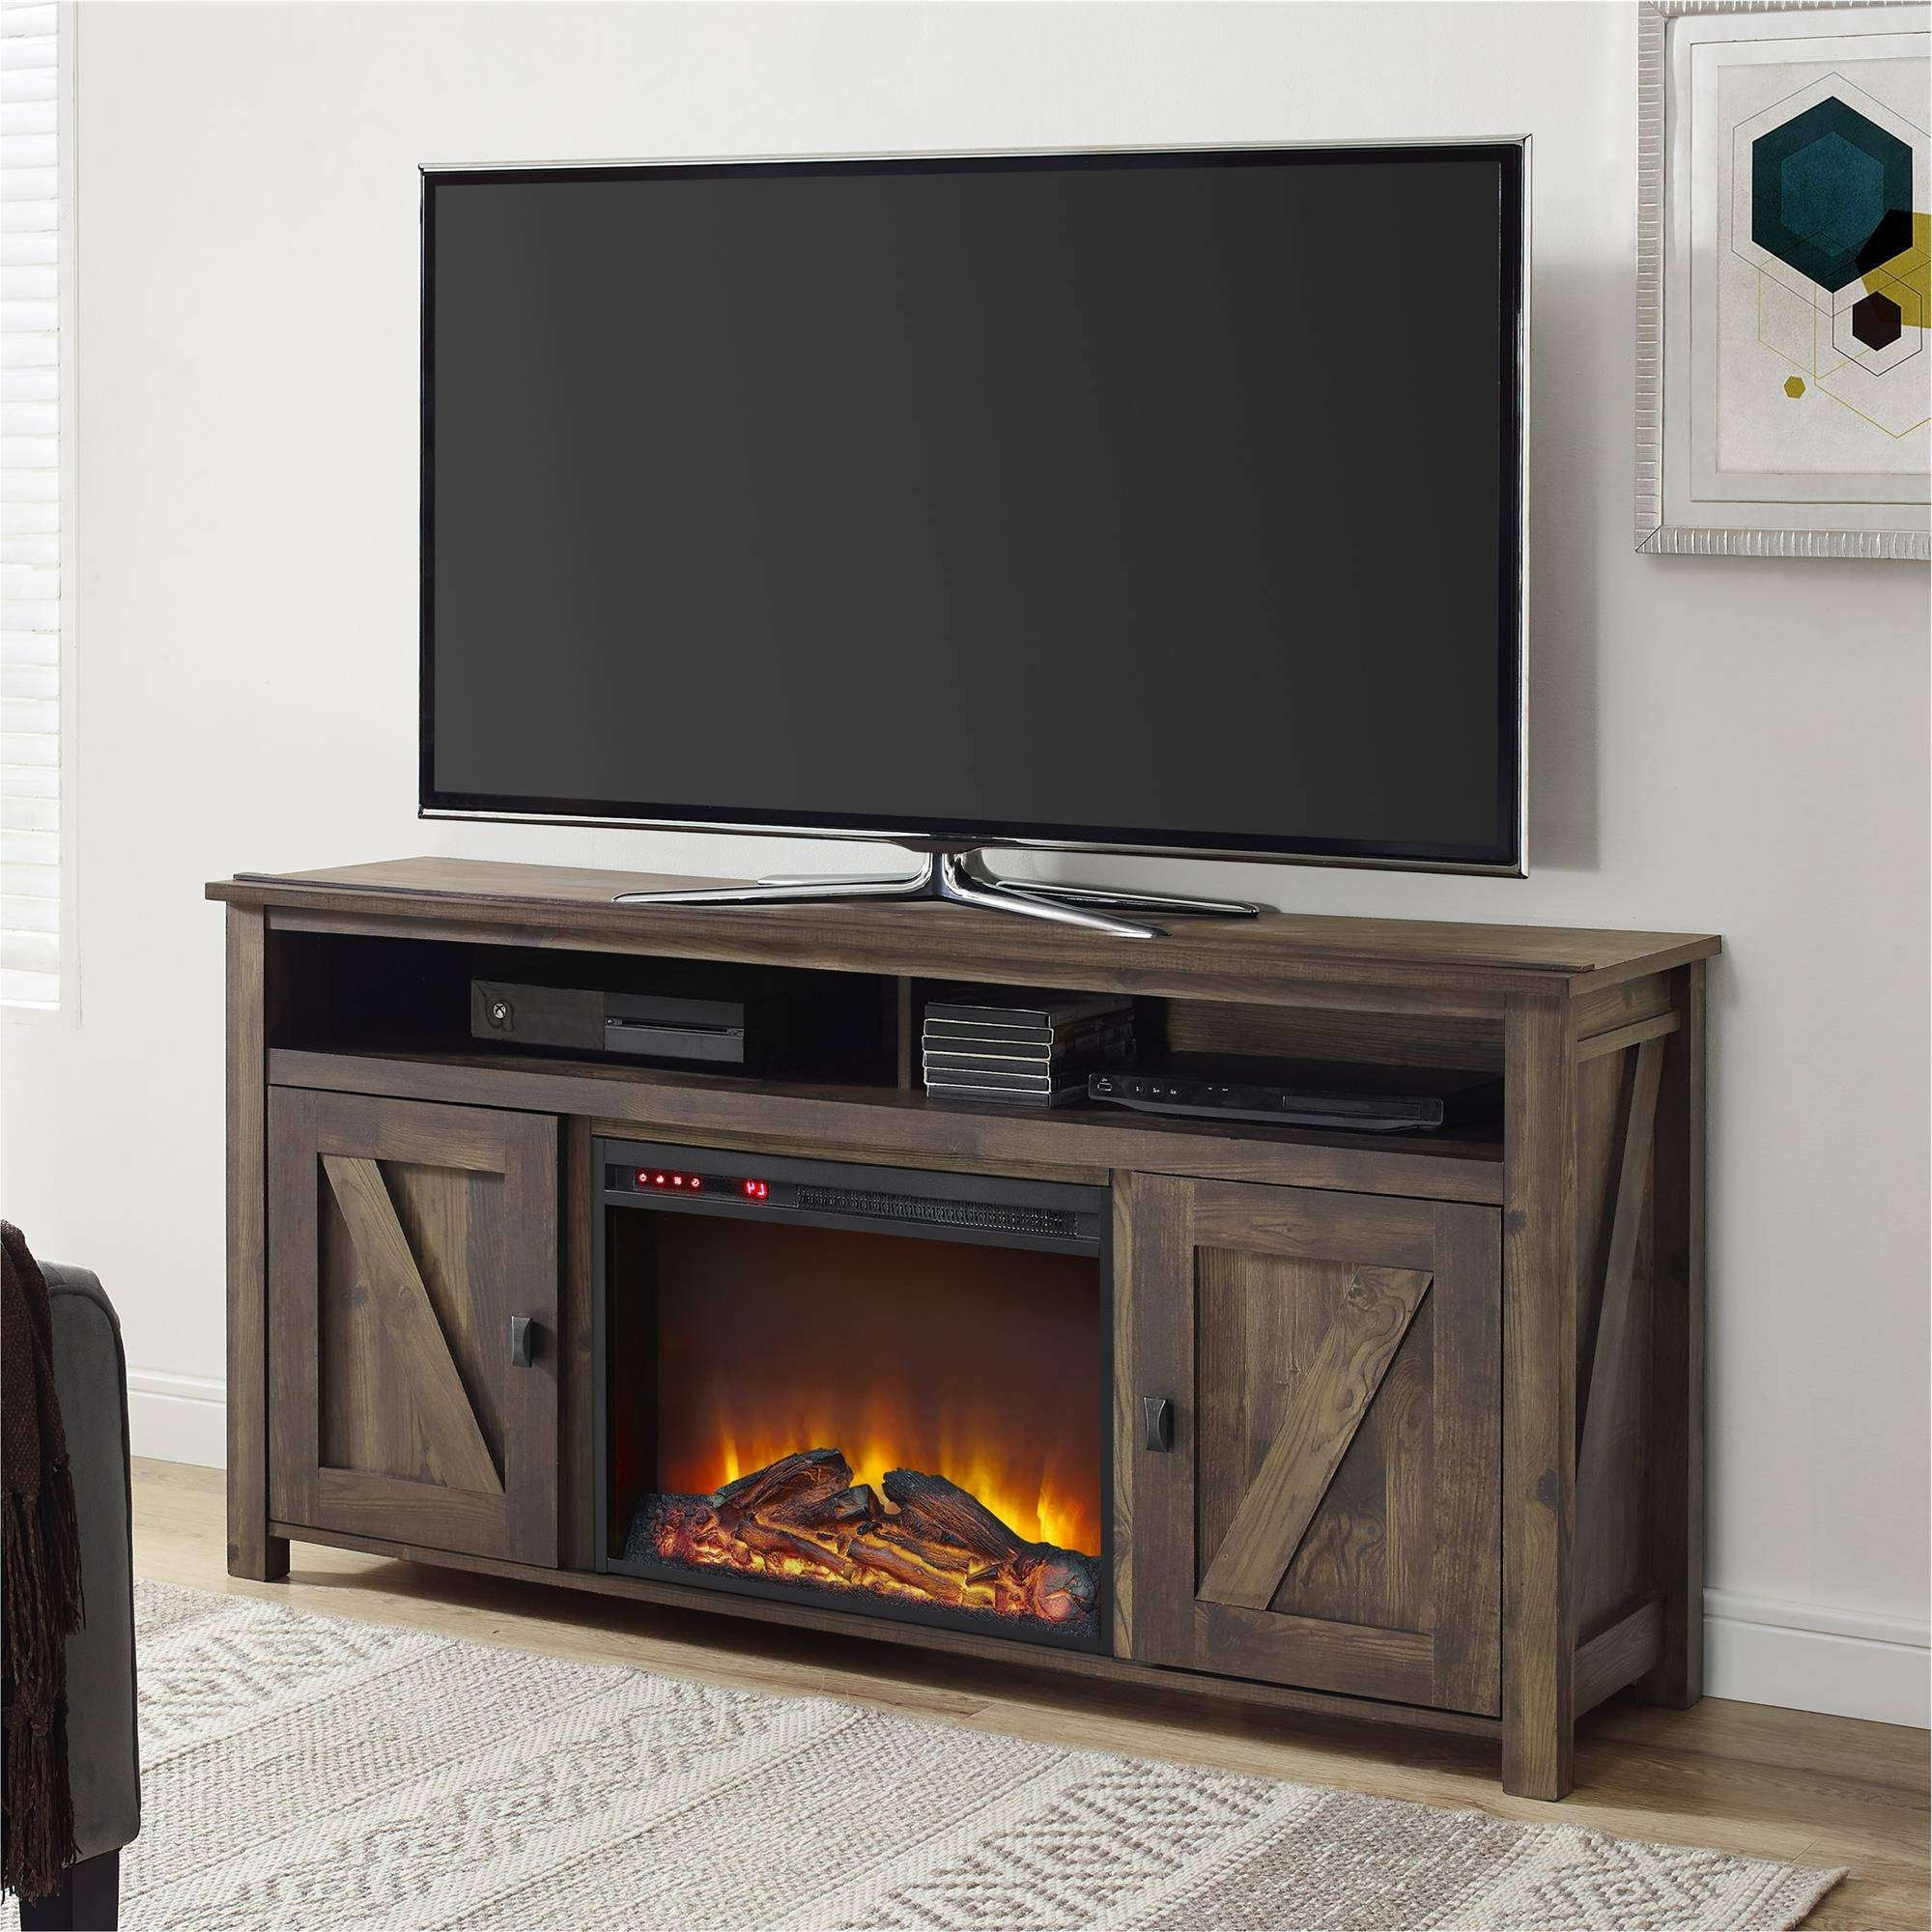 Farmington Electric Fireplace Tv Console For Tvs, Multiple Colors Regarding 50 Inch Fireplace Tv Stands (View 6 of 15)